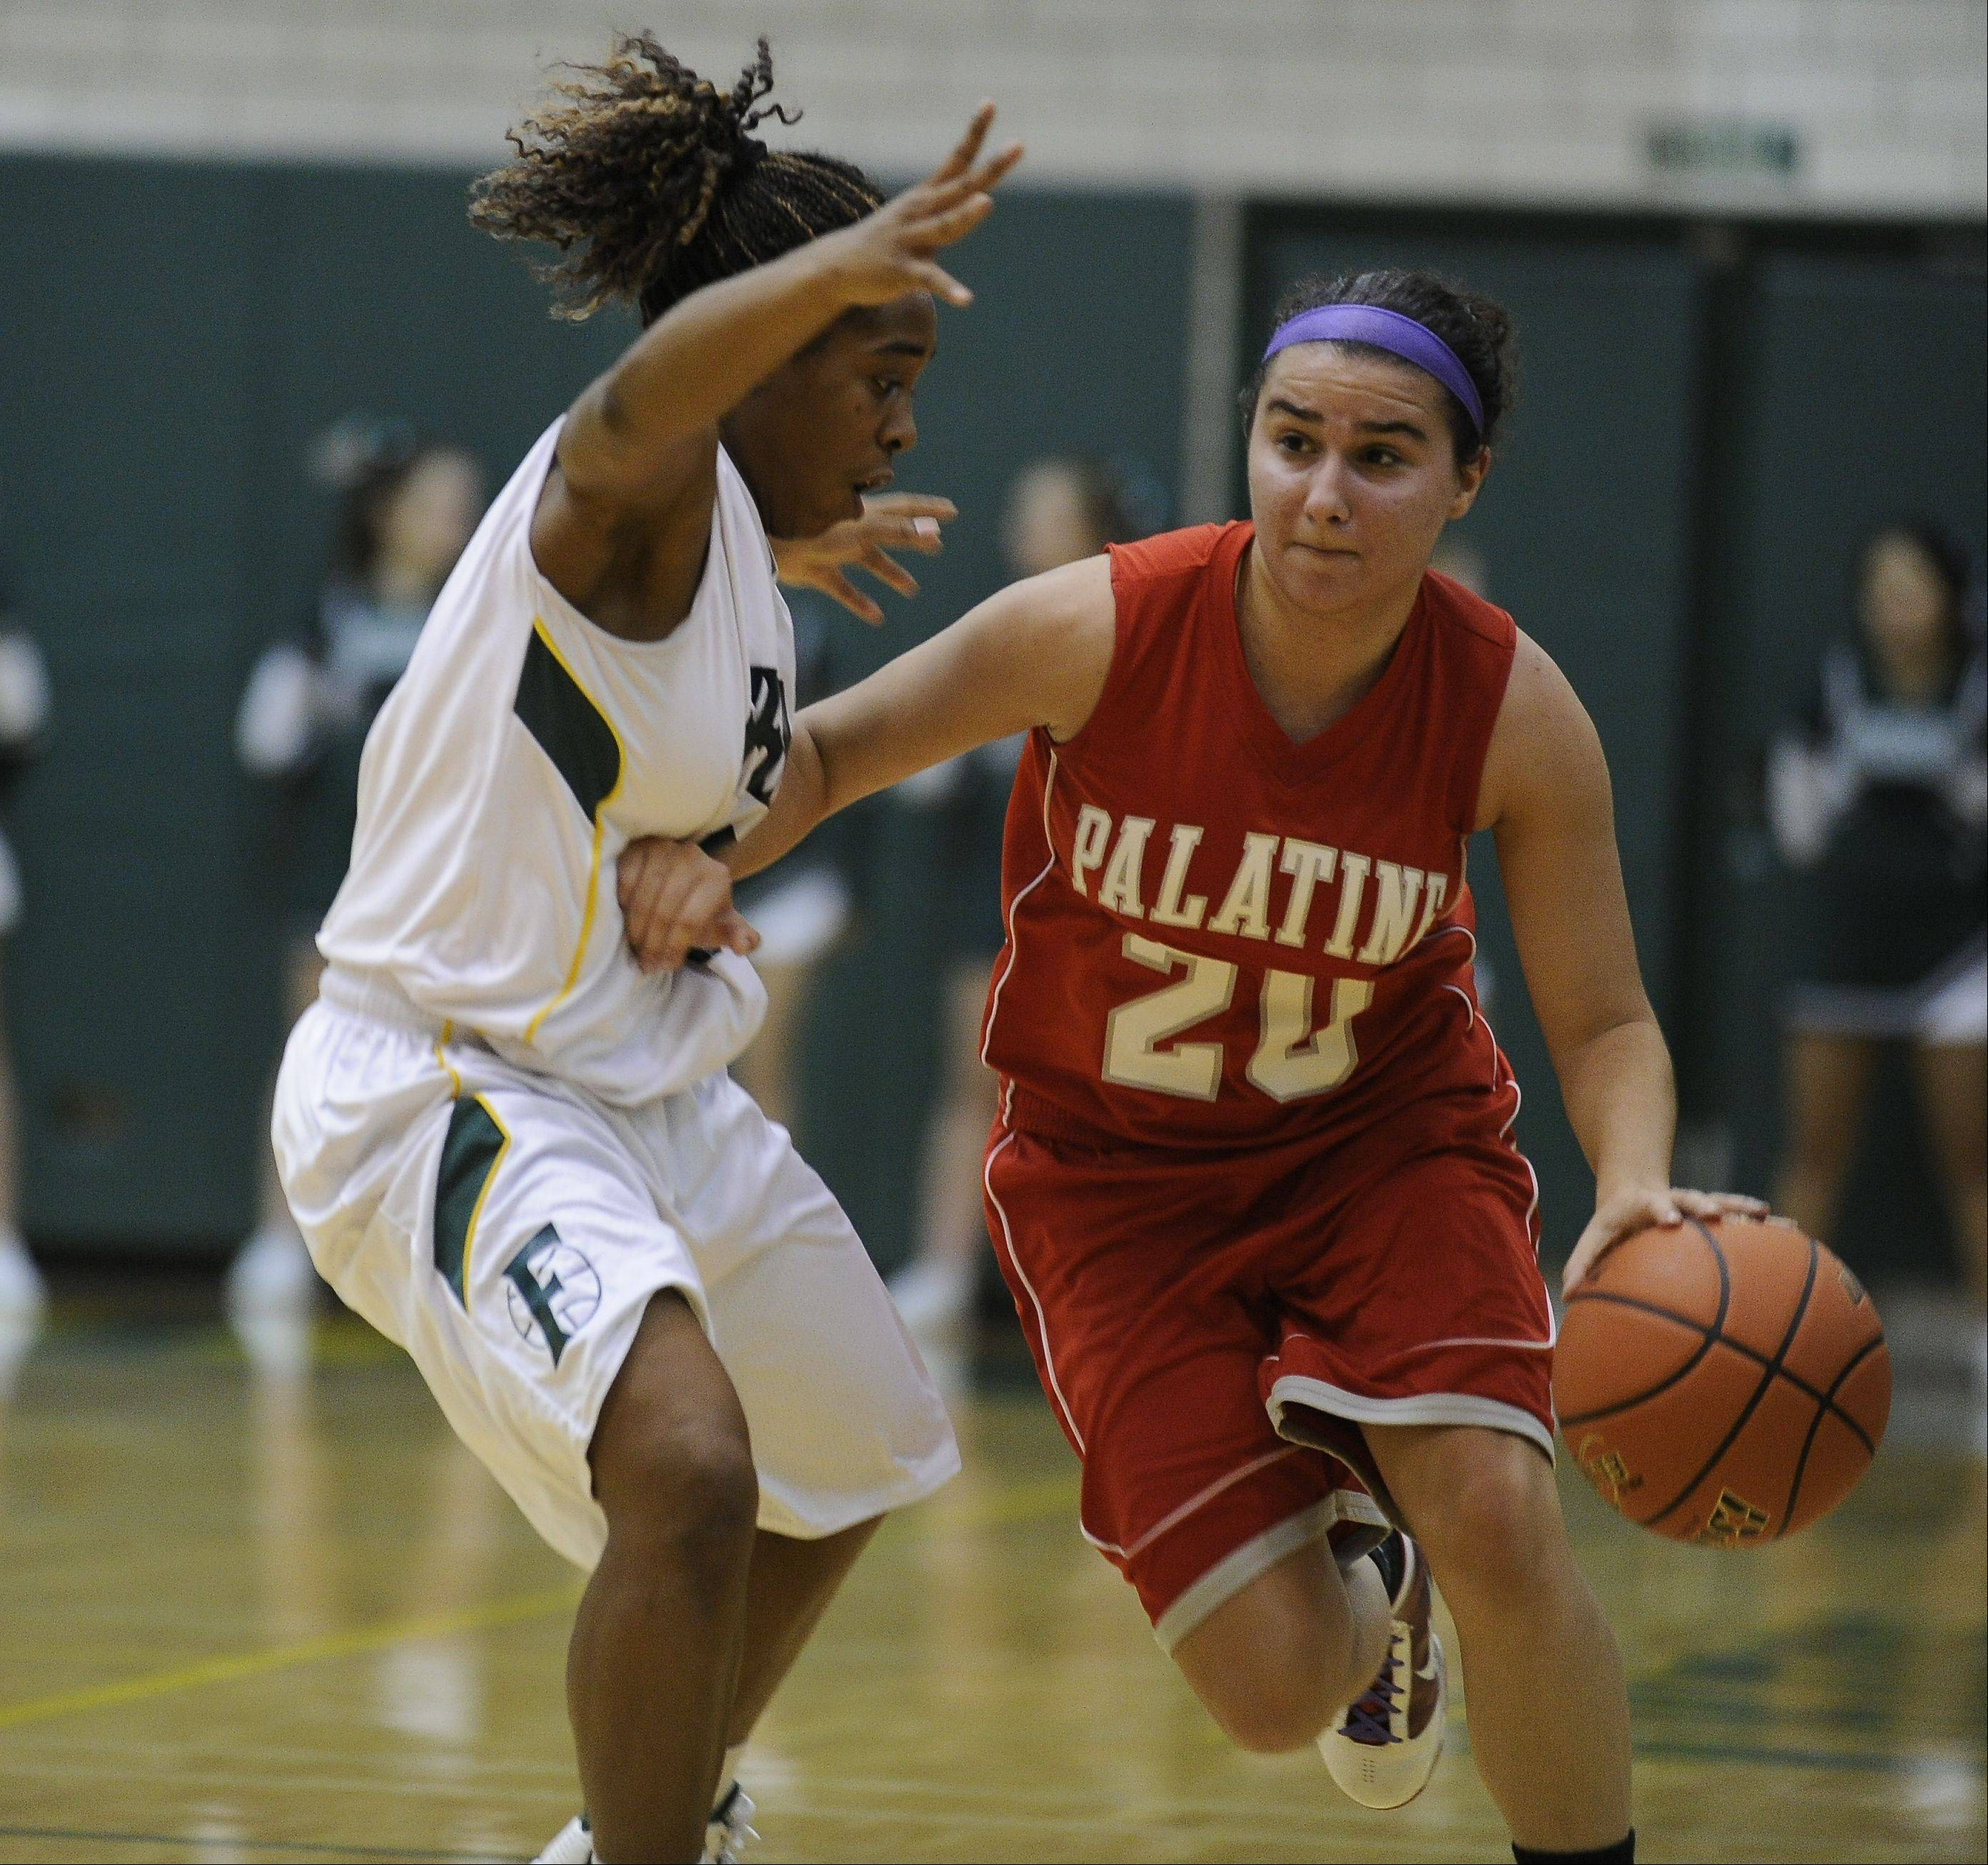 Images from the Palatine vs. Fremd girls basketball game Friday, November 30th, in Palatine.